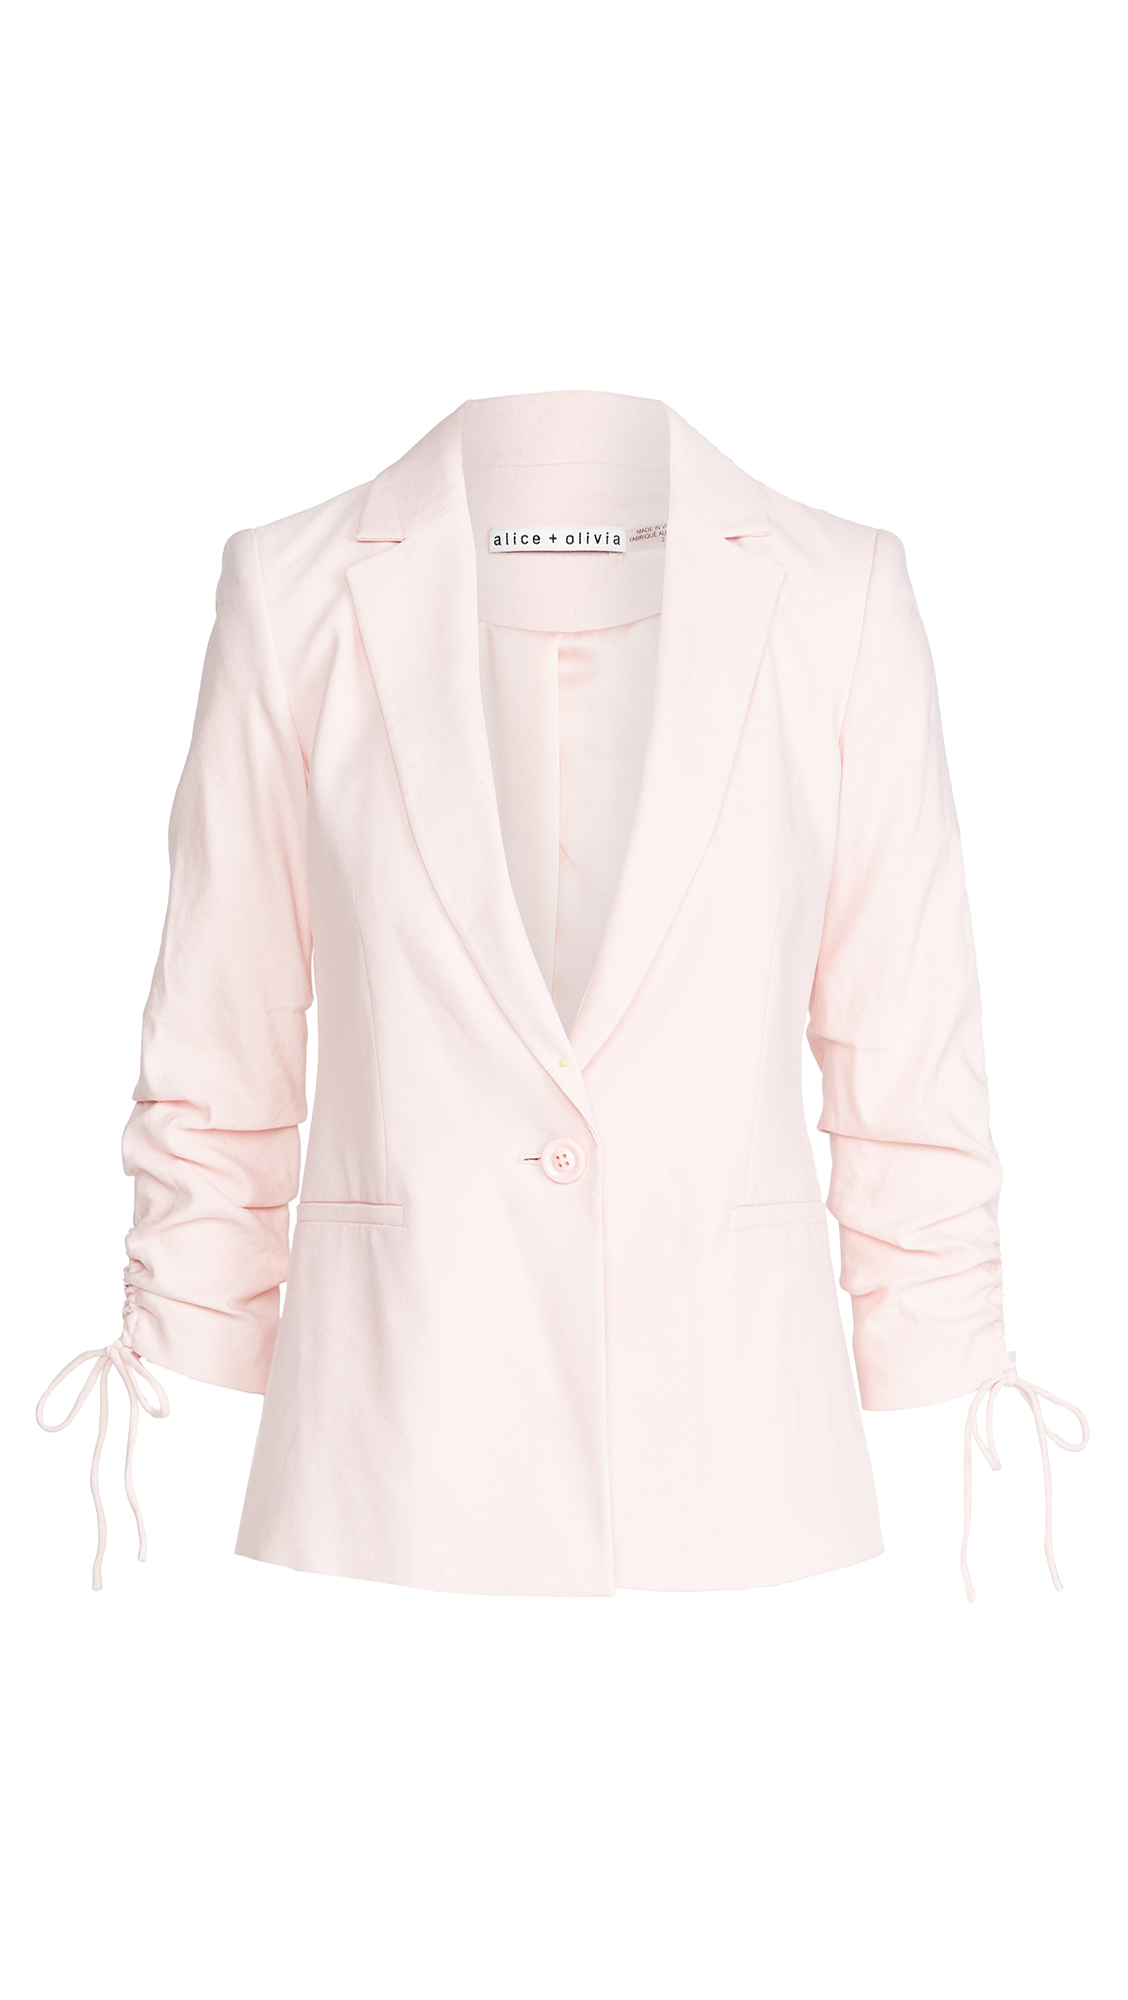 alice + olivia Lester Notch Collar Blazer